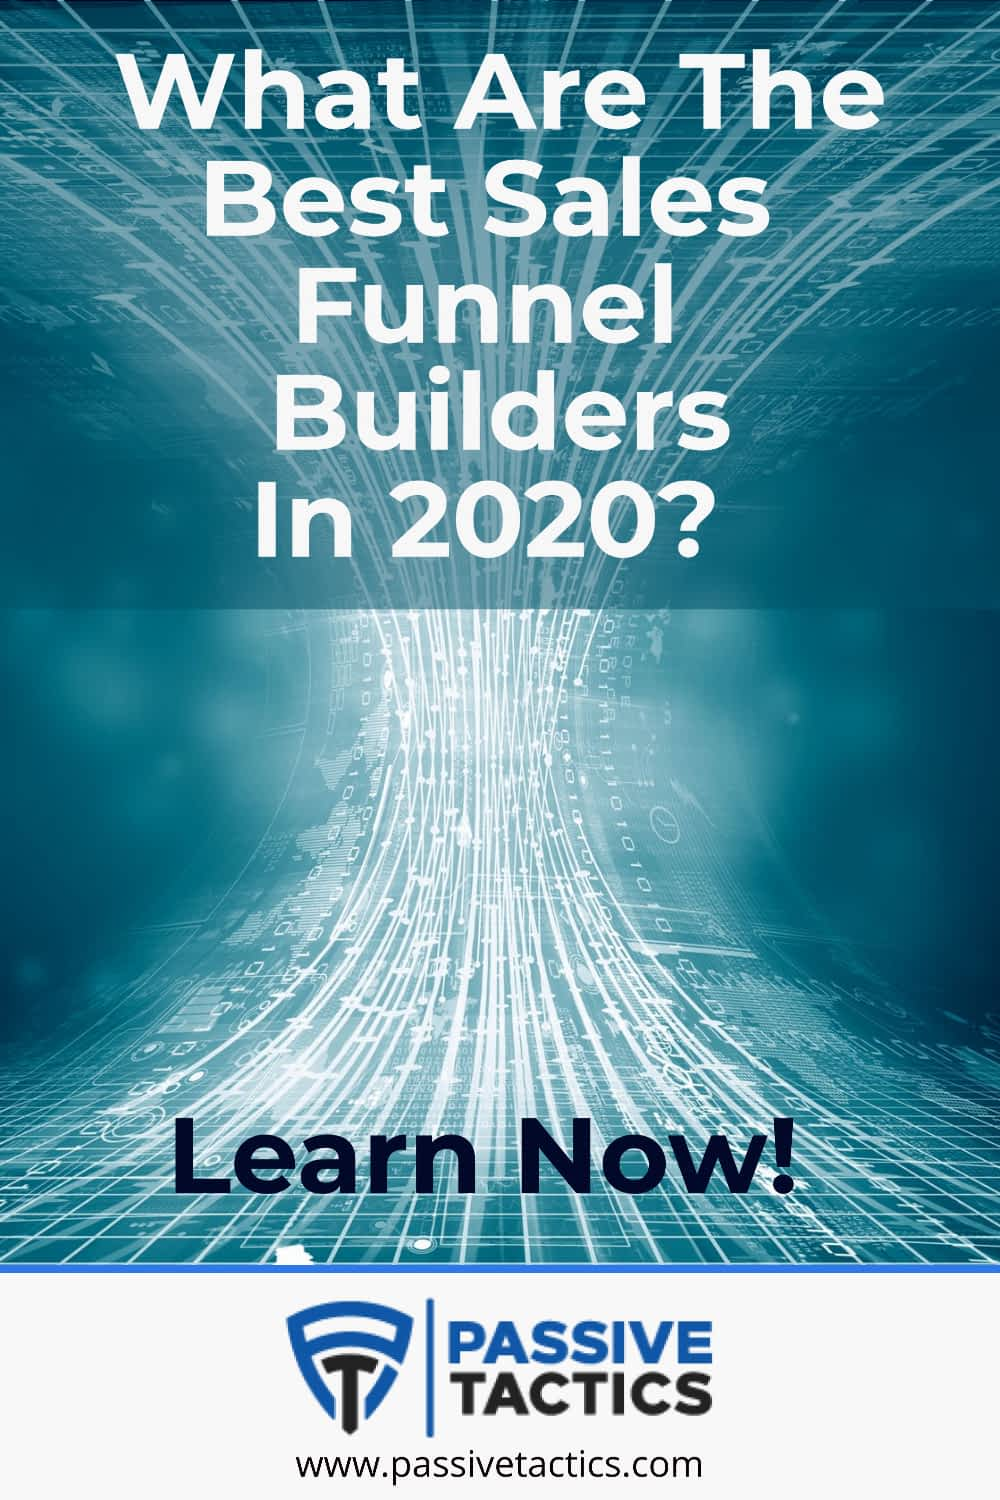 Best Sales Funnel Builder: A Guide To Help You Pick The Best One!